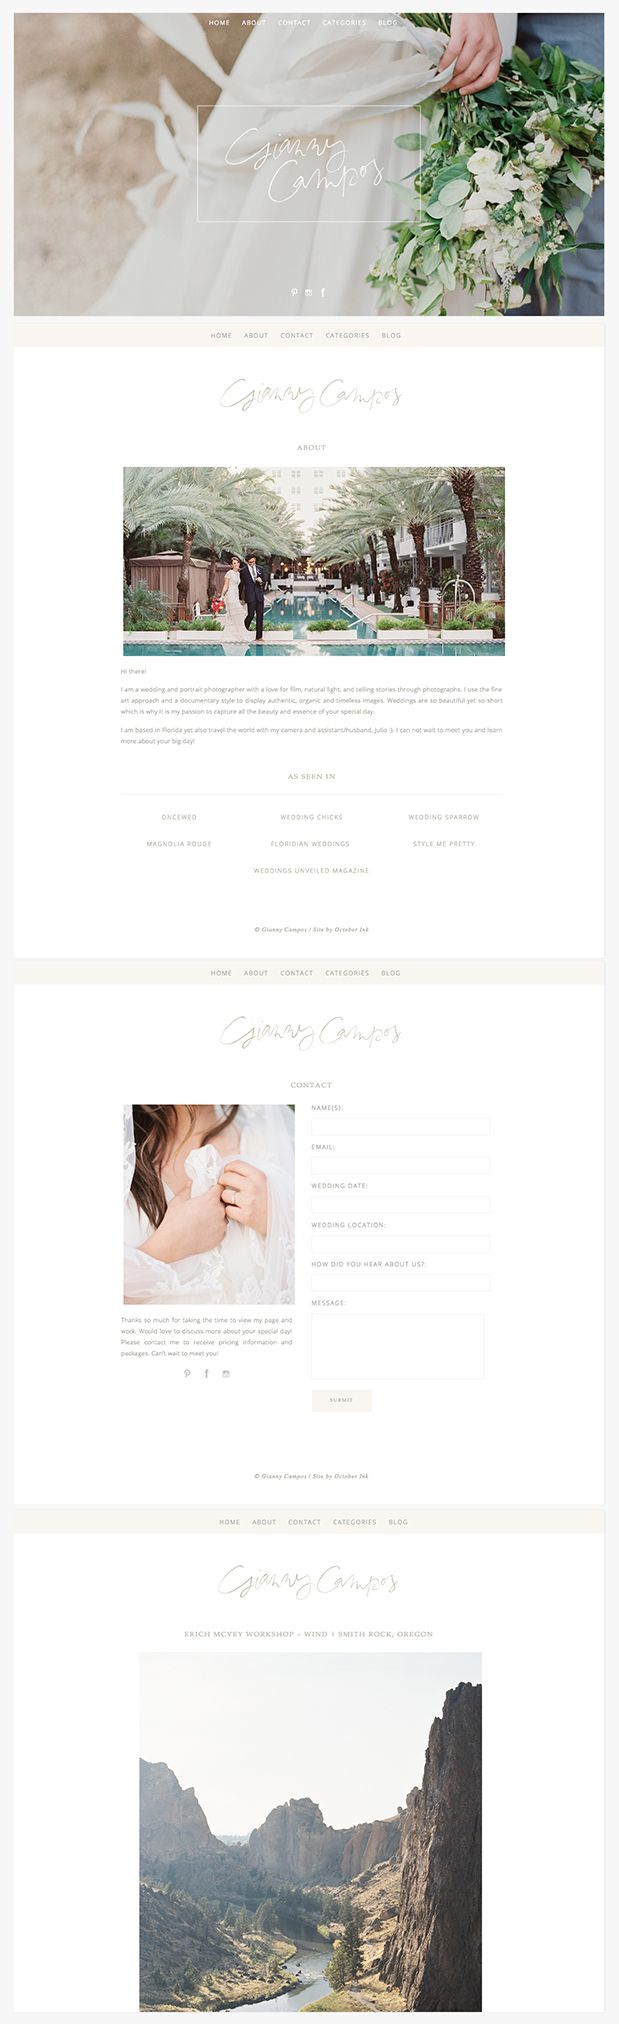 Gianny Campos Branding Website Design